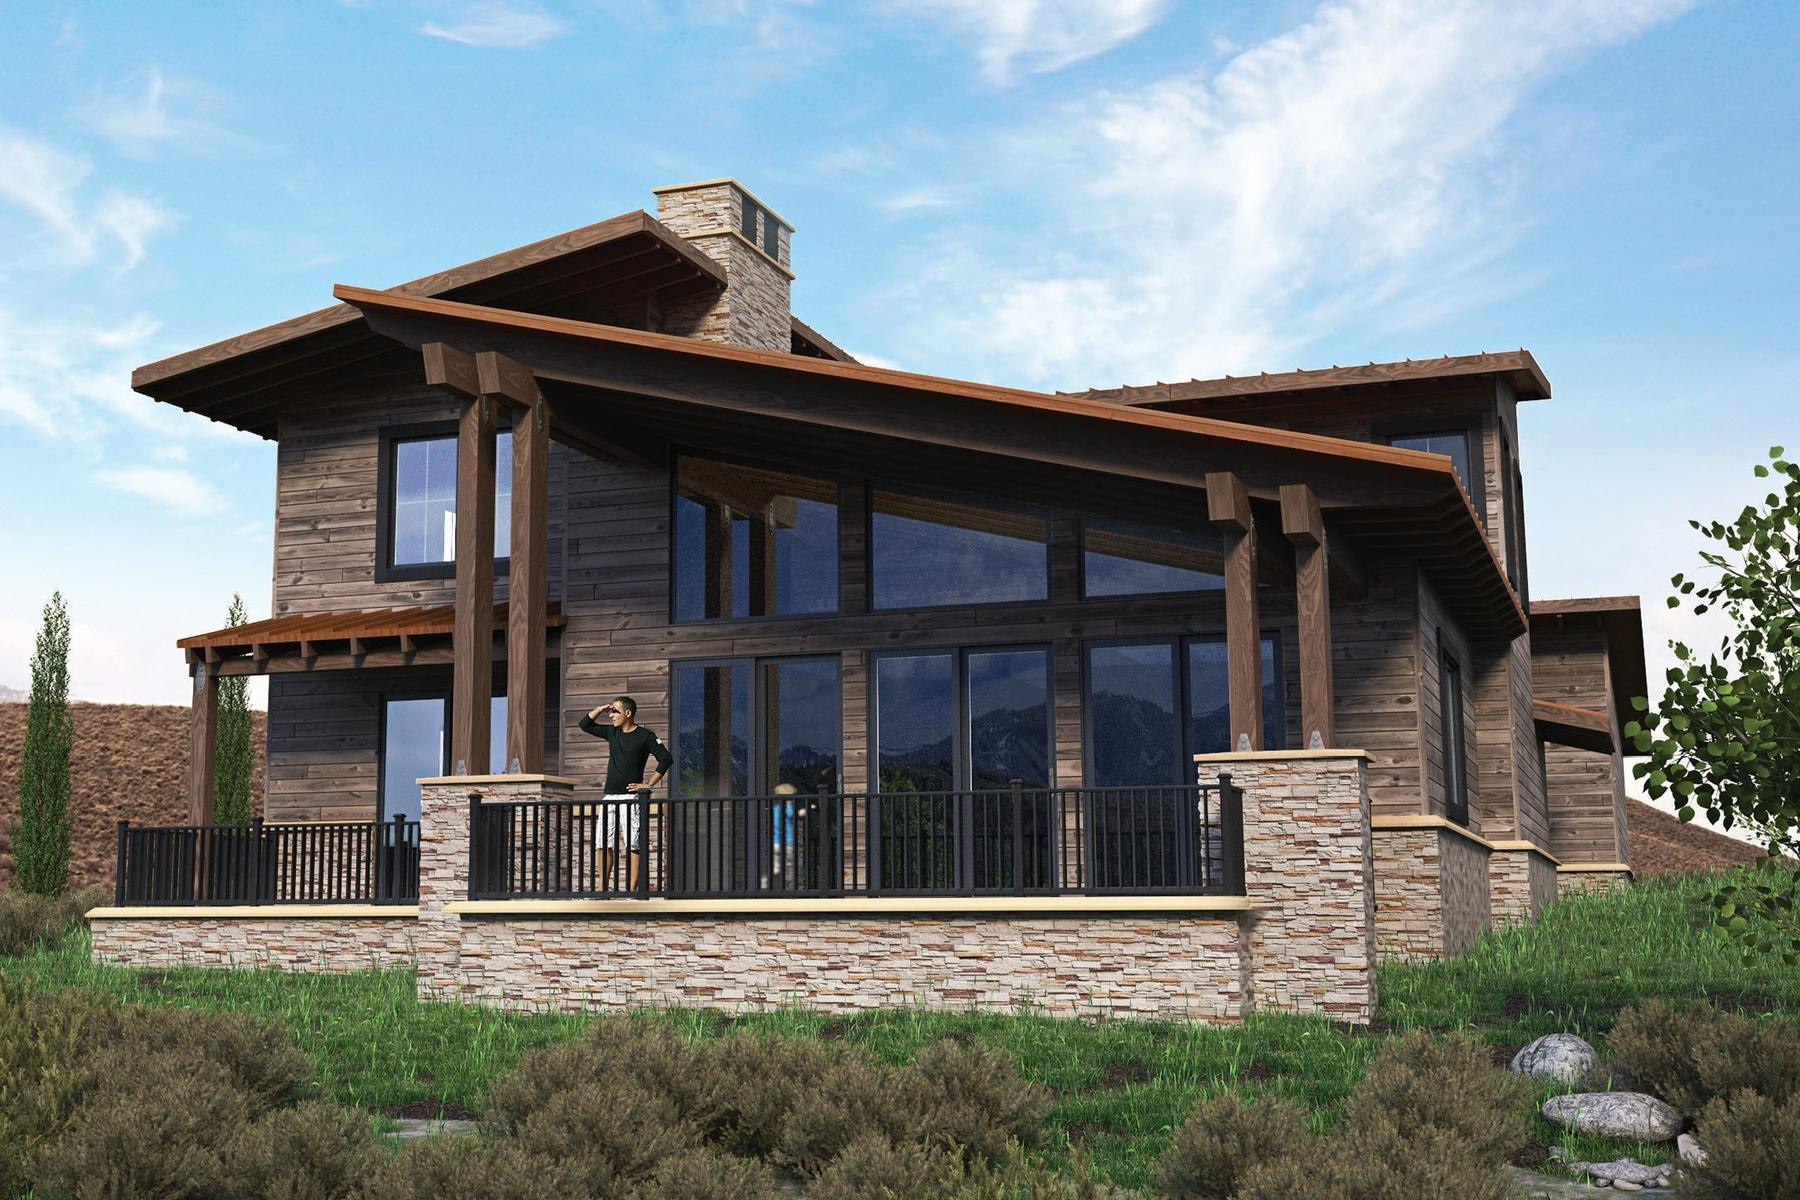 Moradia para Venda às New Nicklaus Golf Cabin Promontory Lot #24 6700 Golden Bear Loop West Lot 24 Park City, Utah, 84098 Estados Unidos